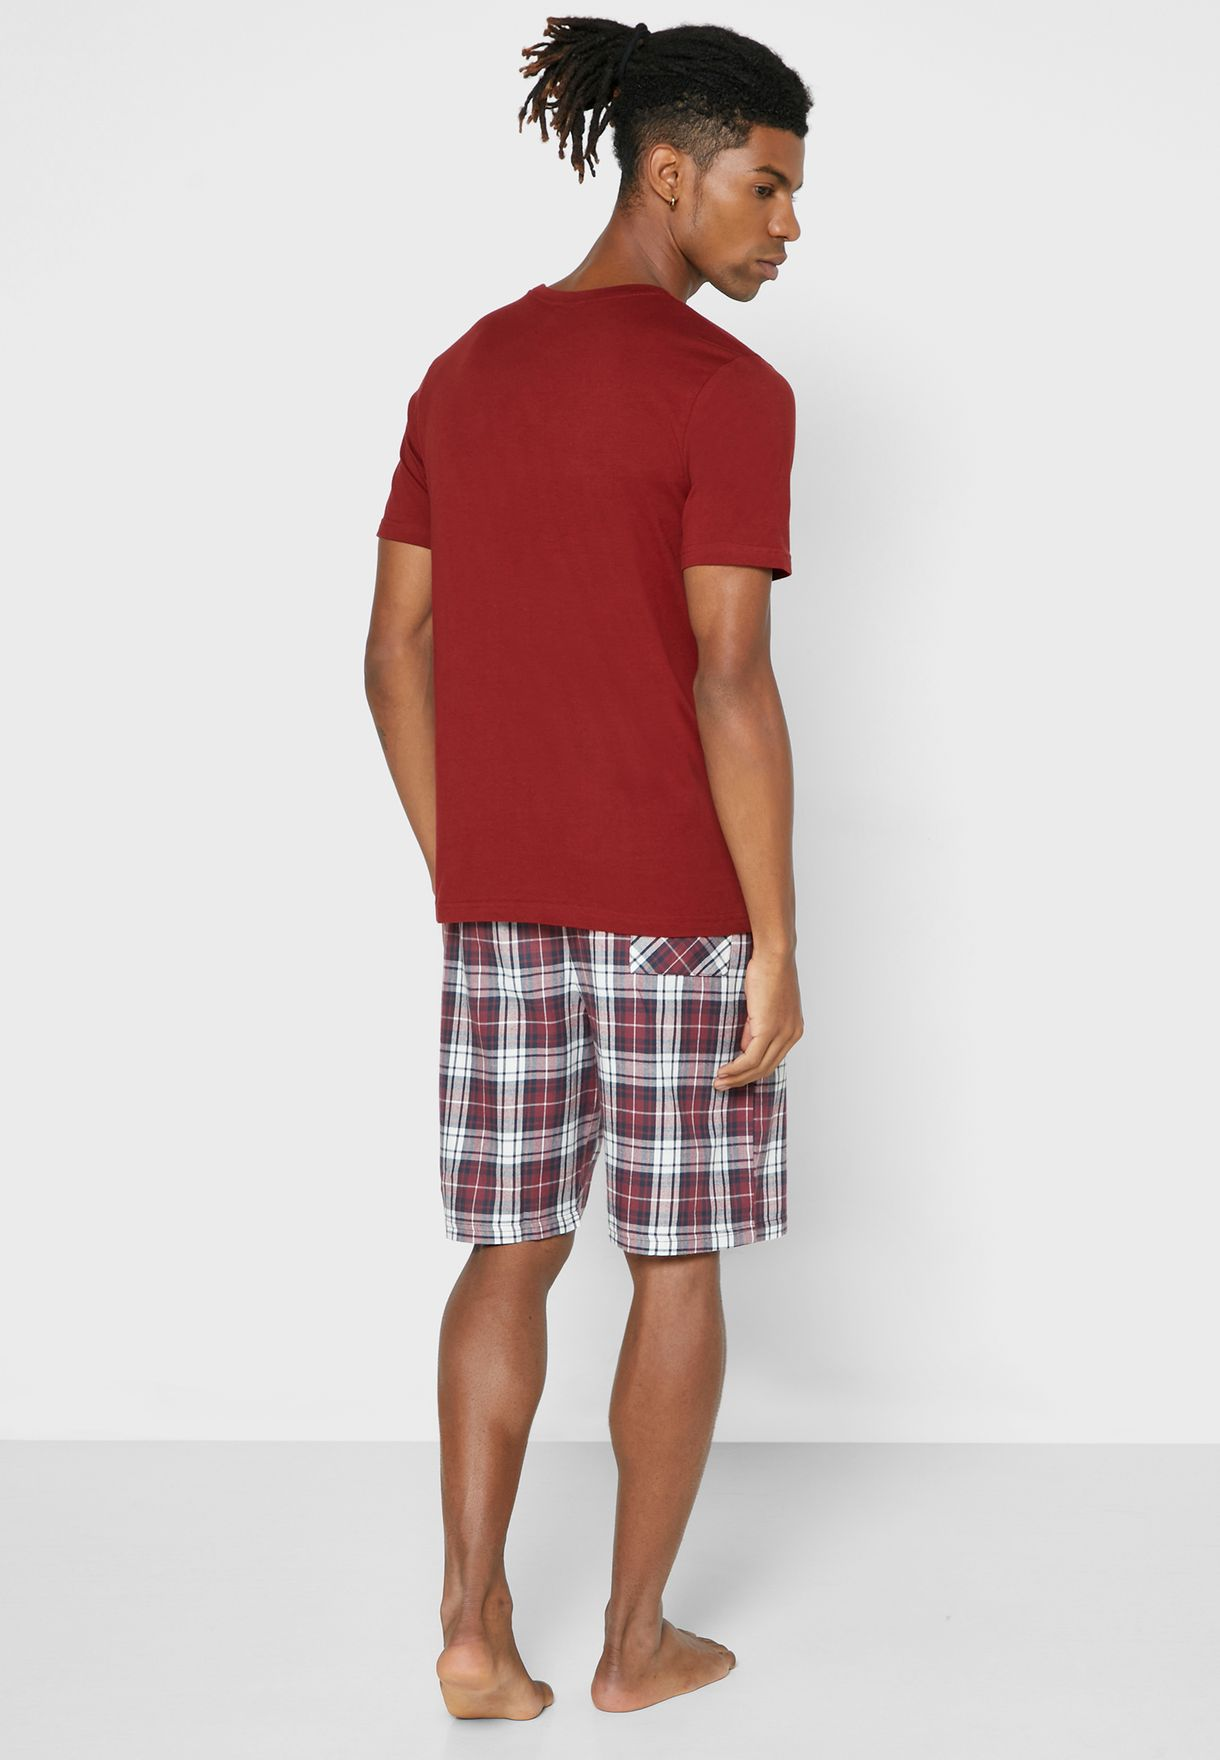 T-Shirt & Checked Shorts Pyjama Set